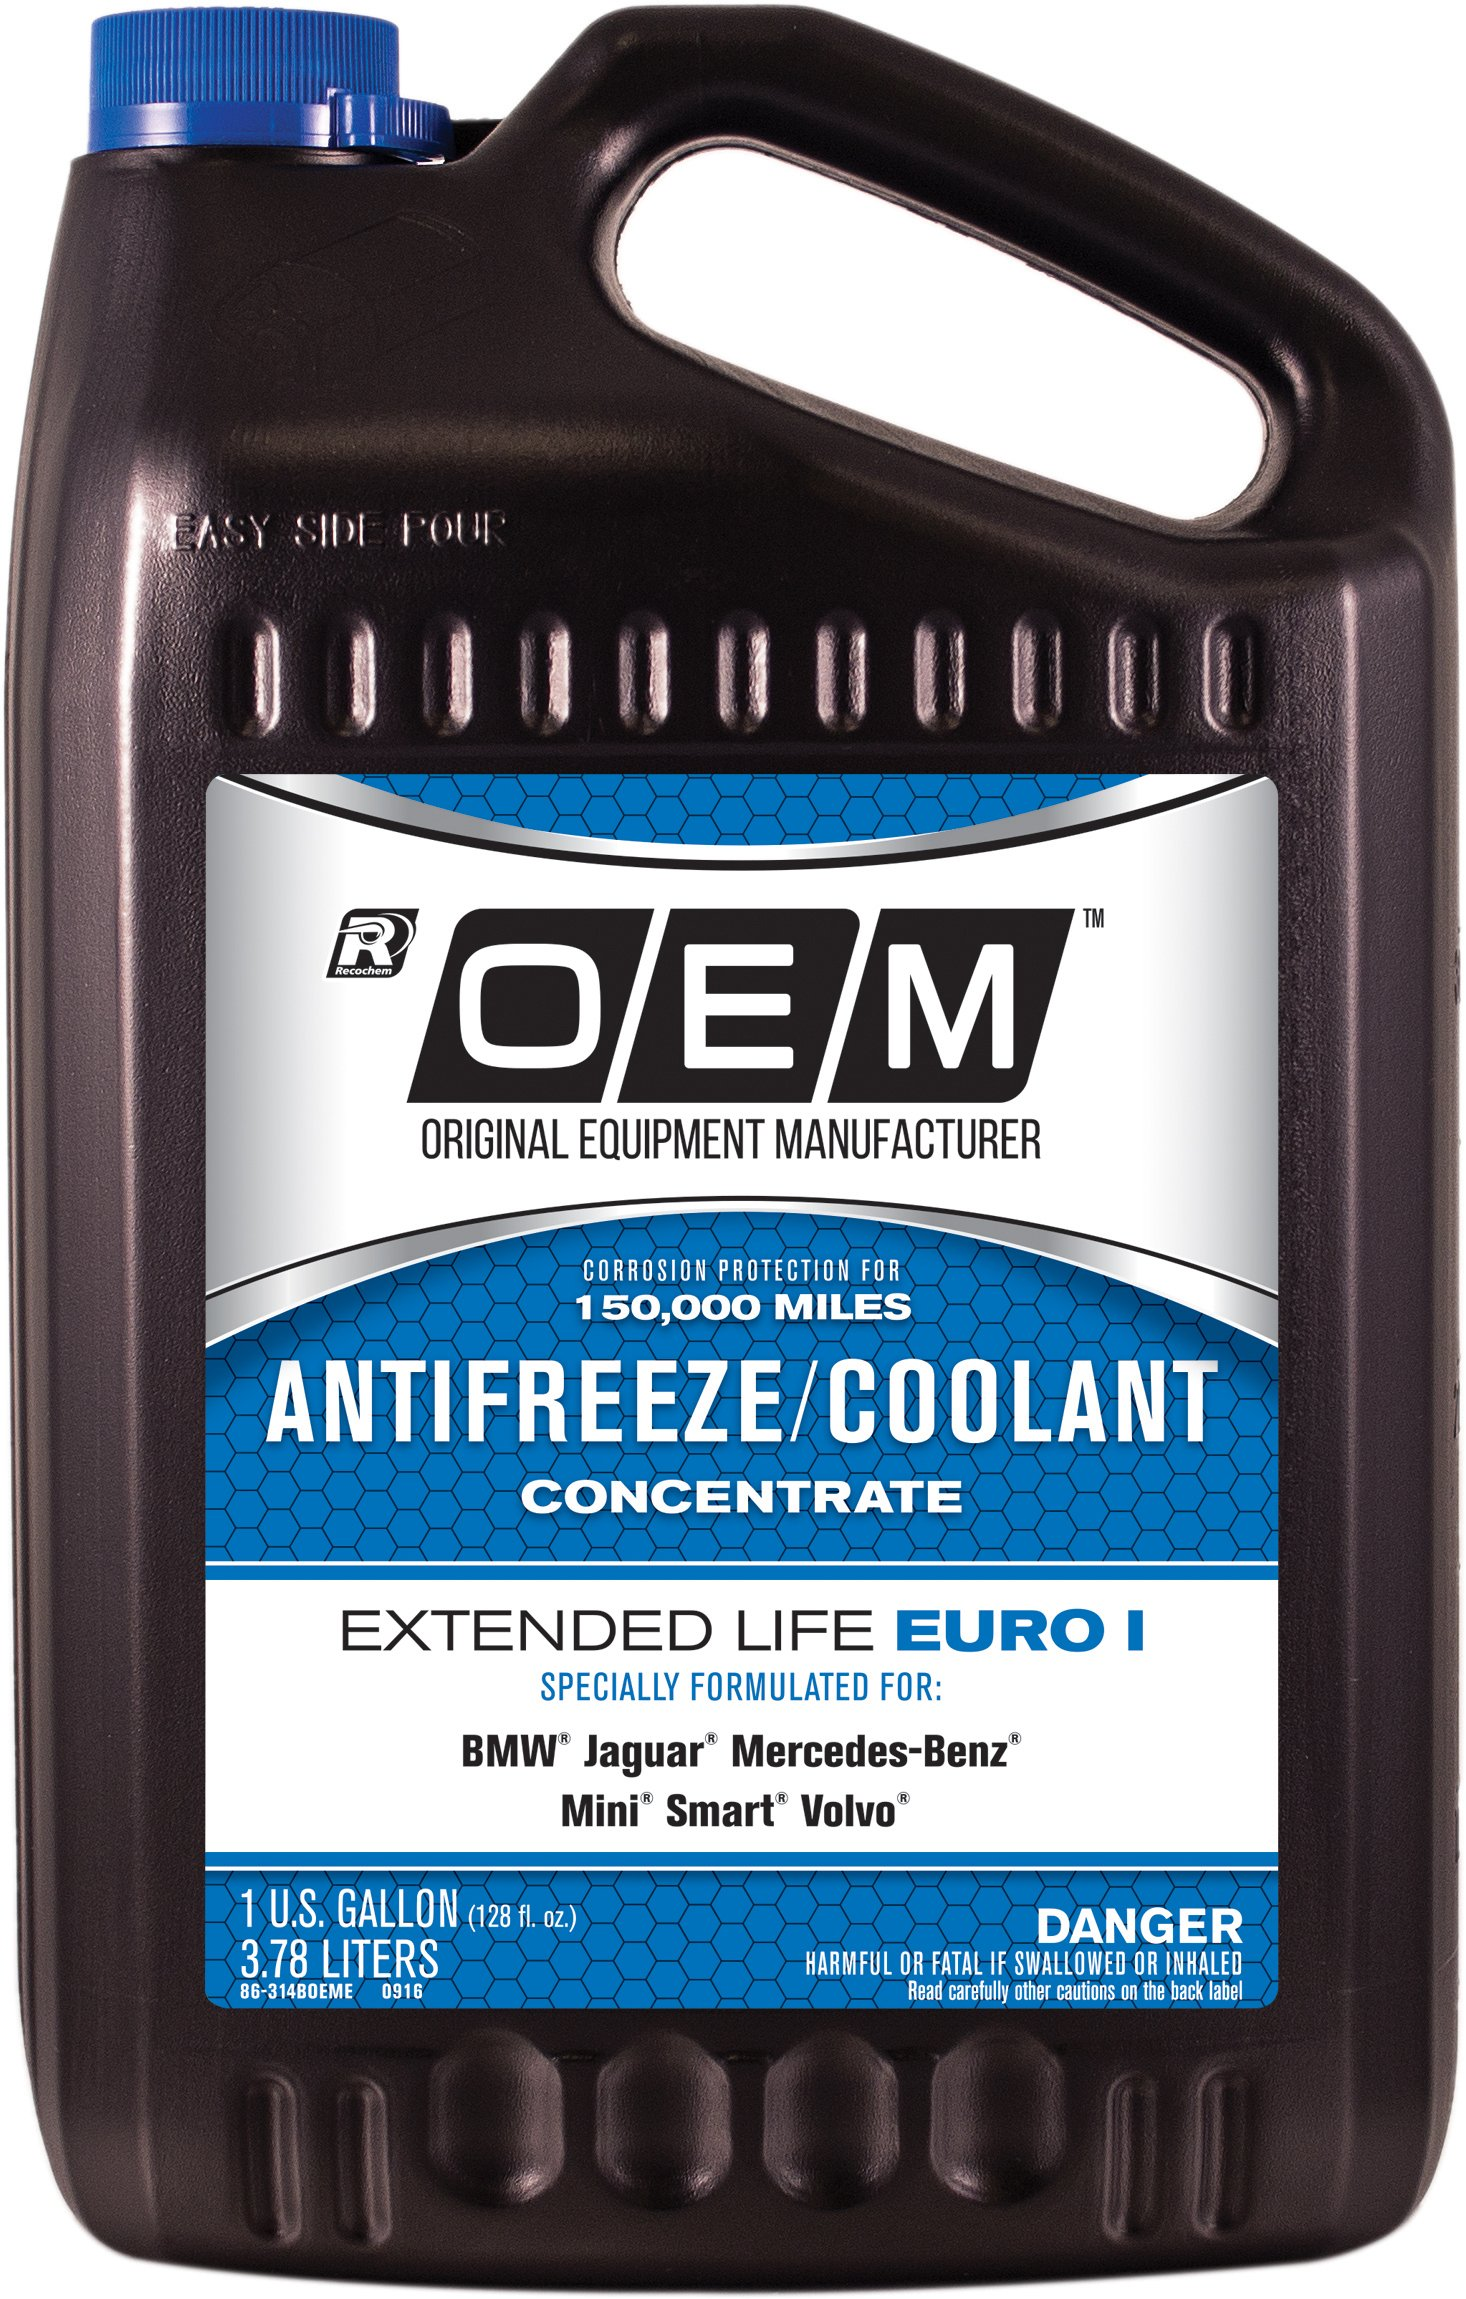 Recochem OEM 86-314BOEME-4PK Blue Premium Antifreeze Concentrate Extended Life - Euro I BLUE, 1 gallon, 4 Pack